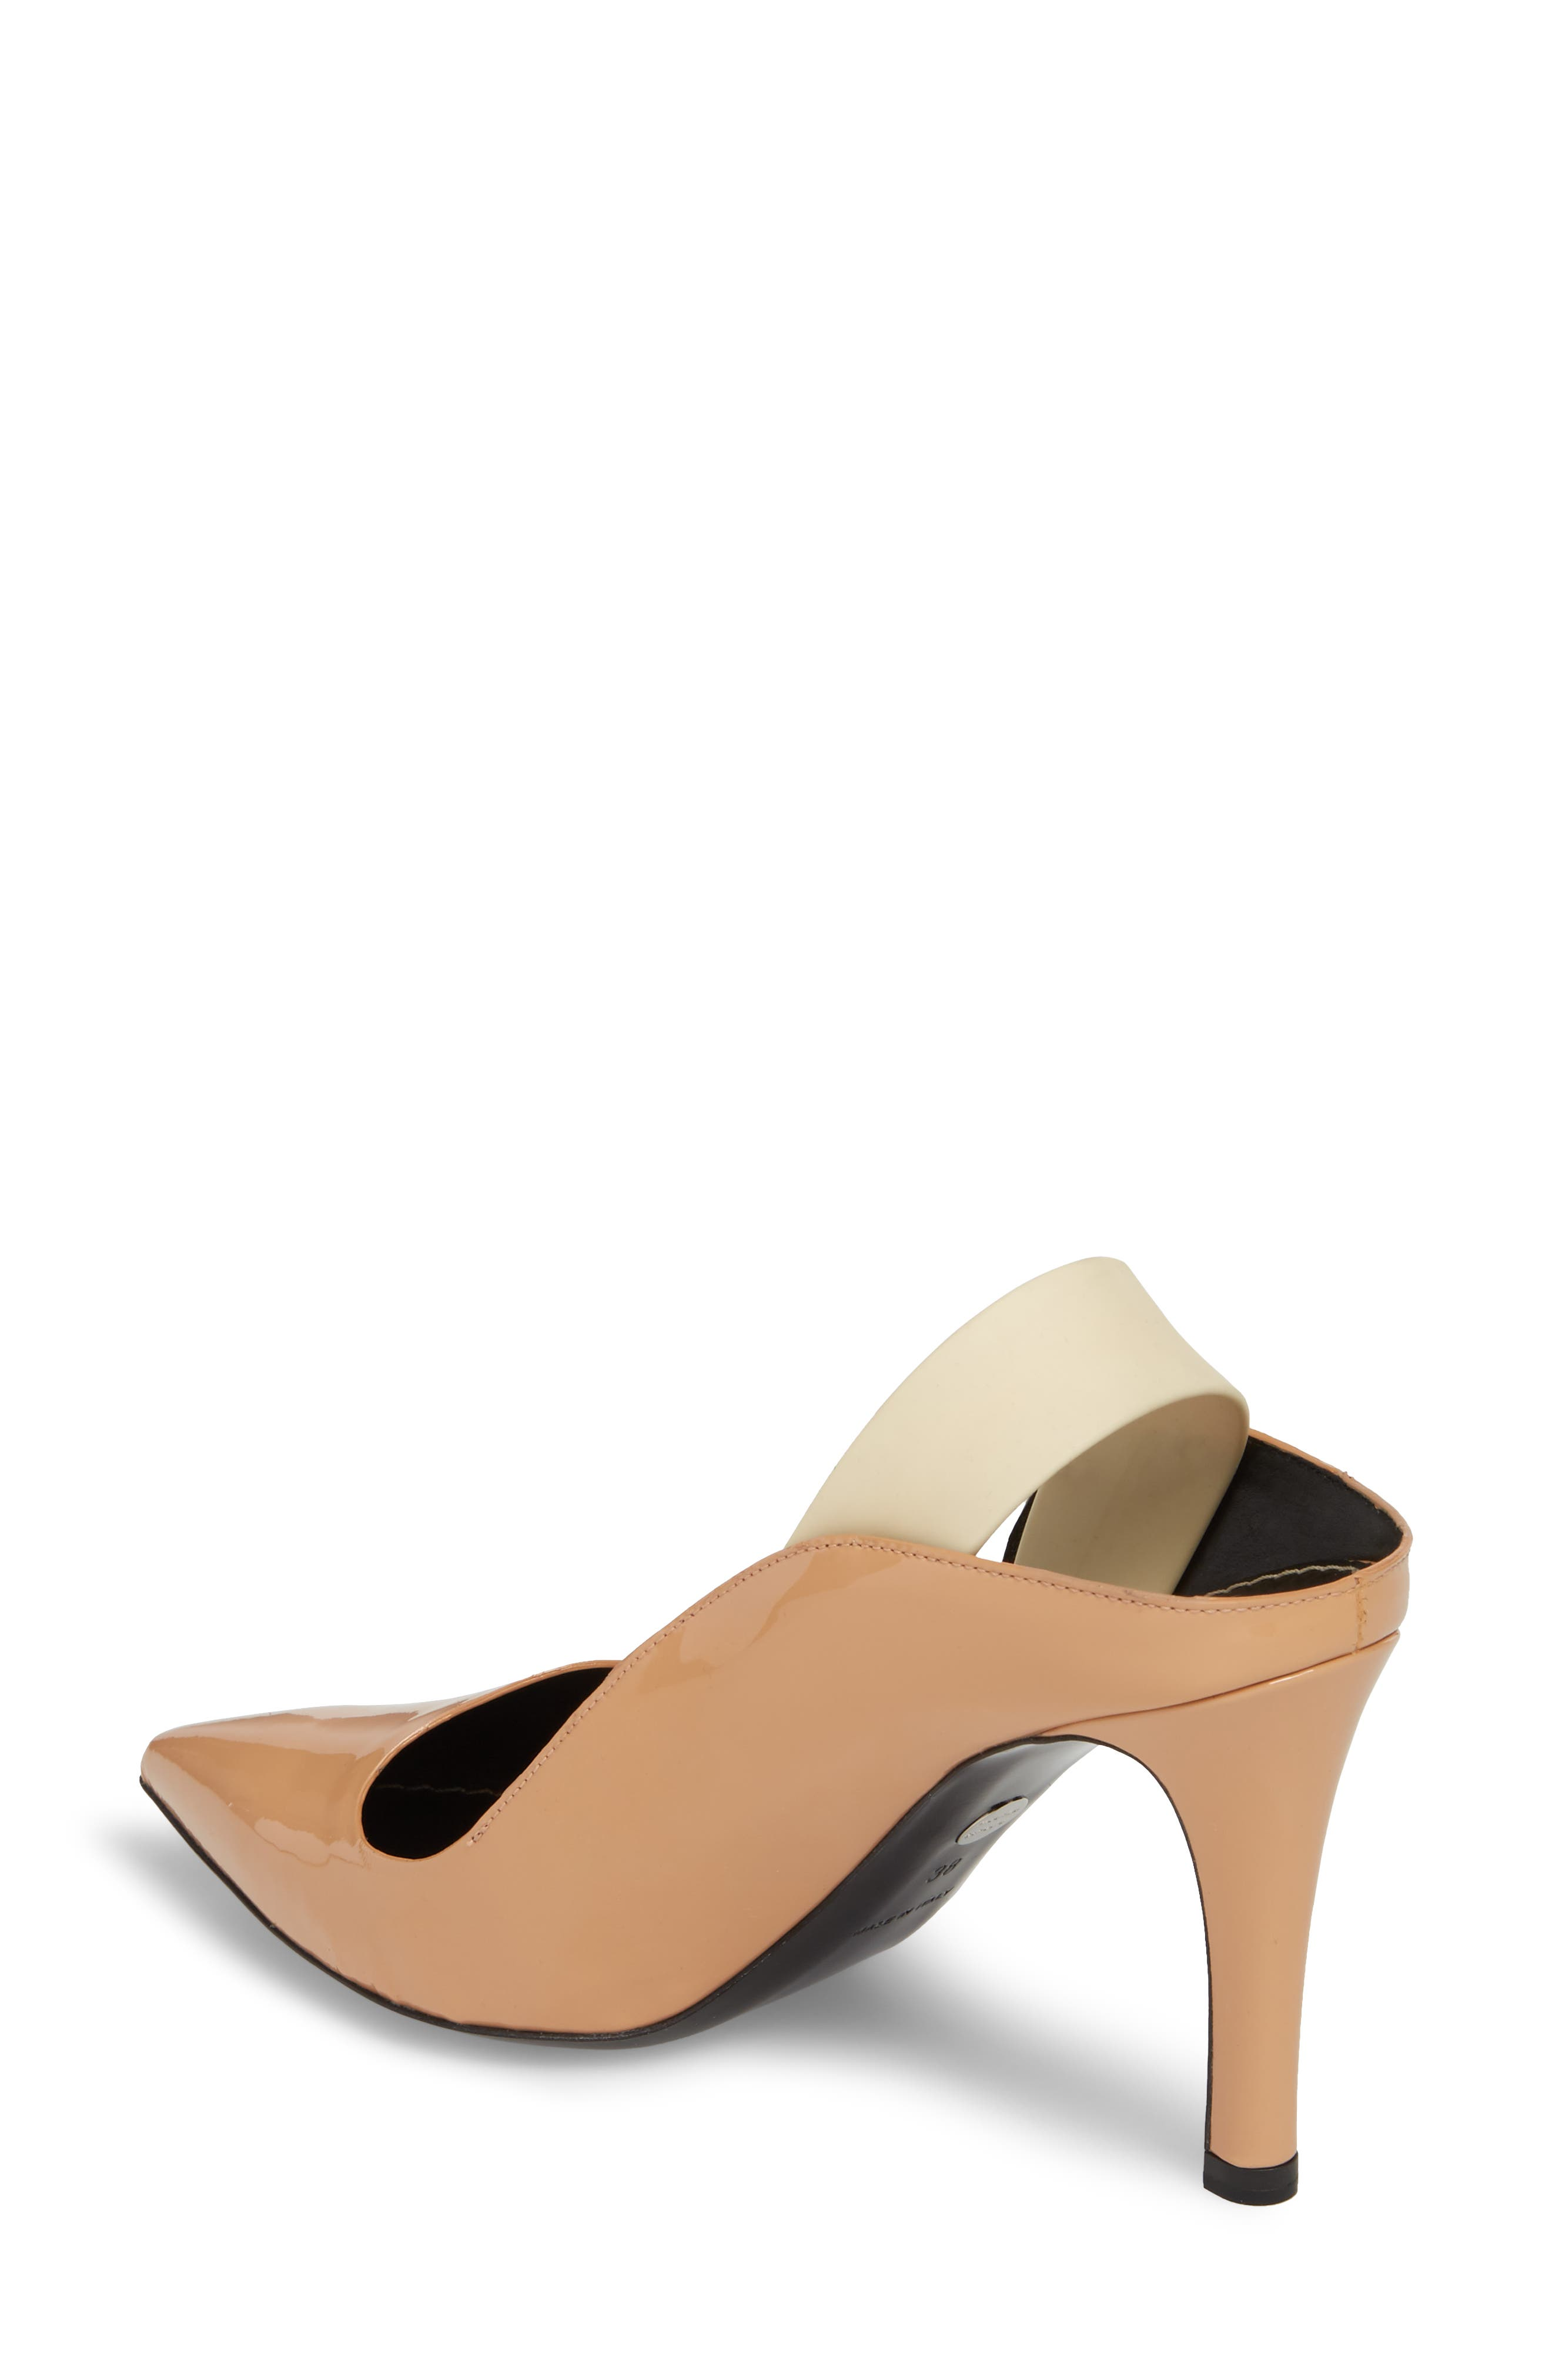 Wave Slingback Pump,                             Alternate thumbnail 2, color,                             Nude